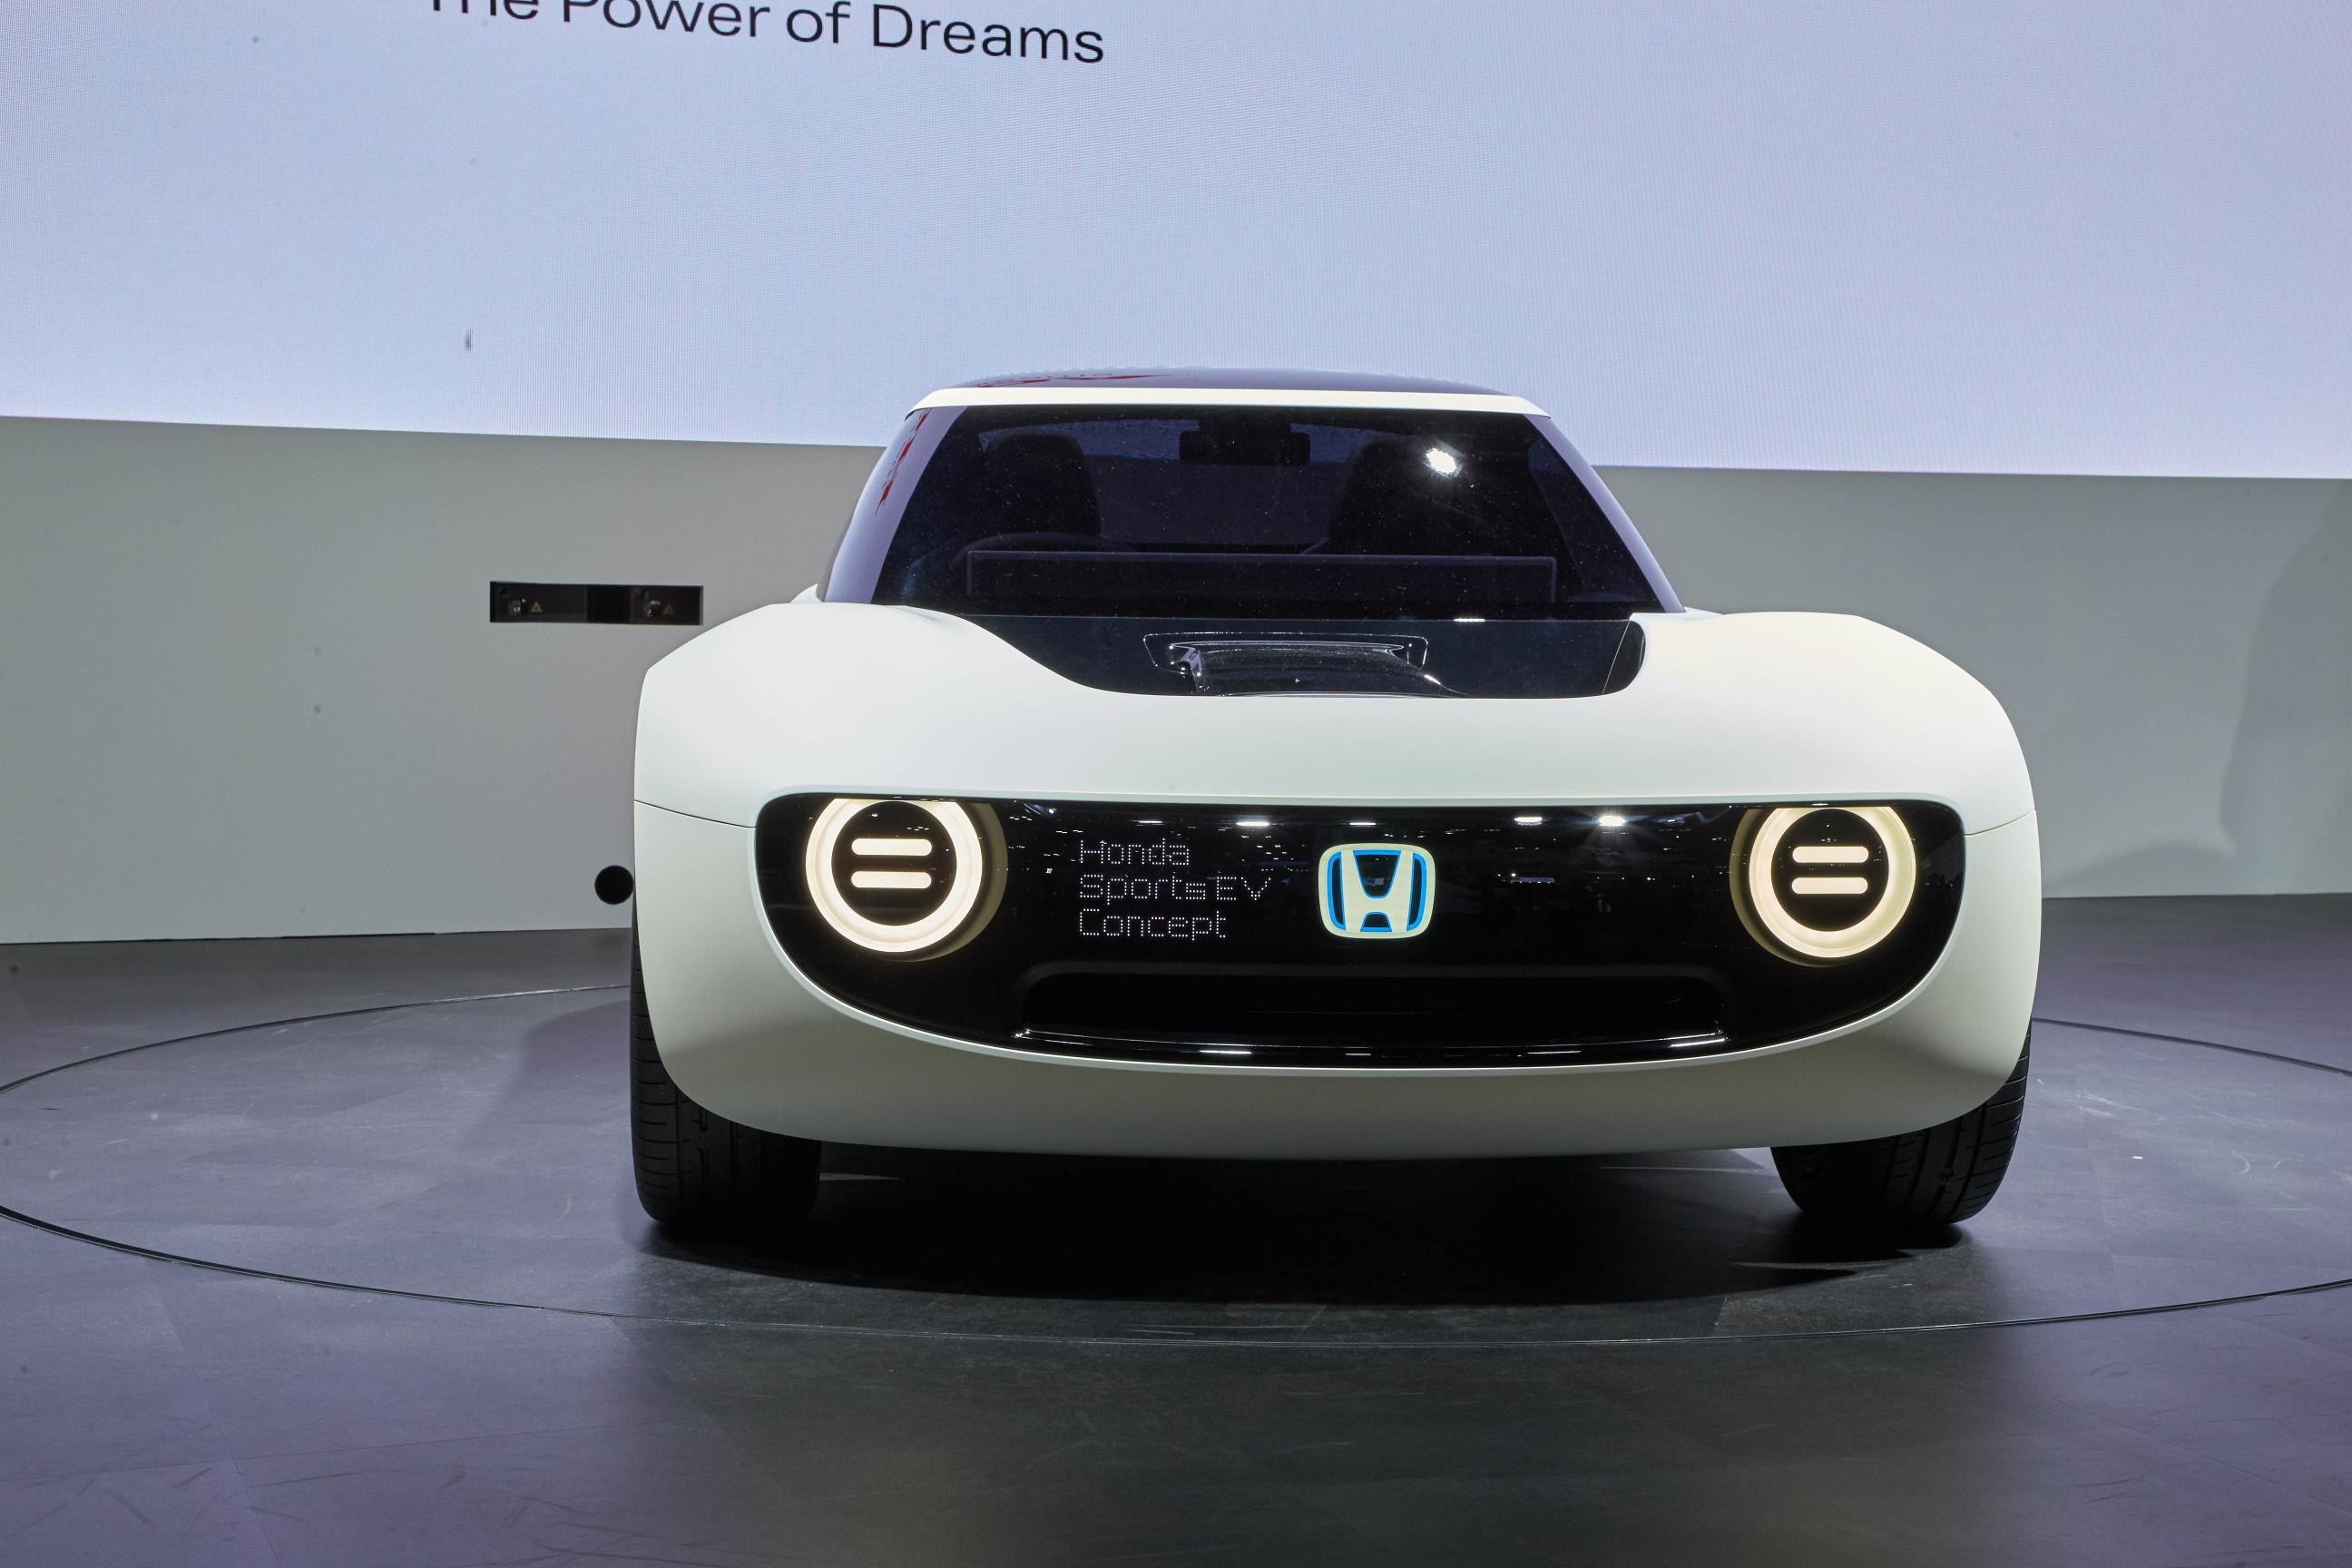 Honda Sports Ev And Urban Concepts Reveal Future Retro Anese Design